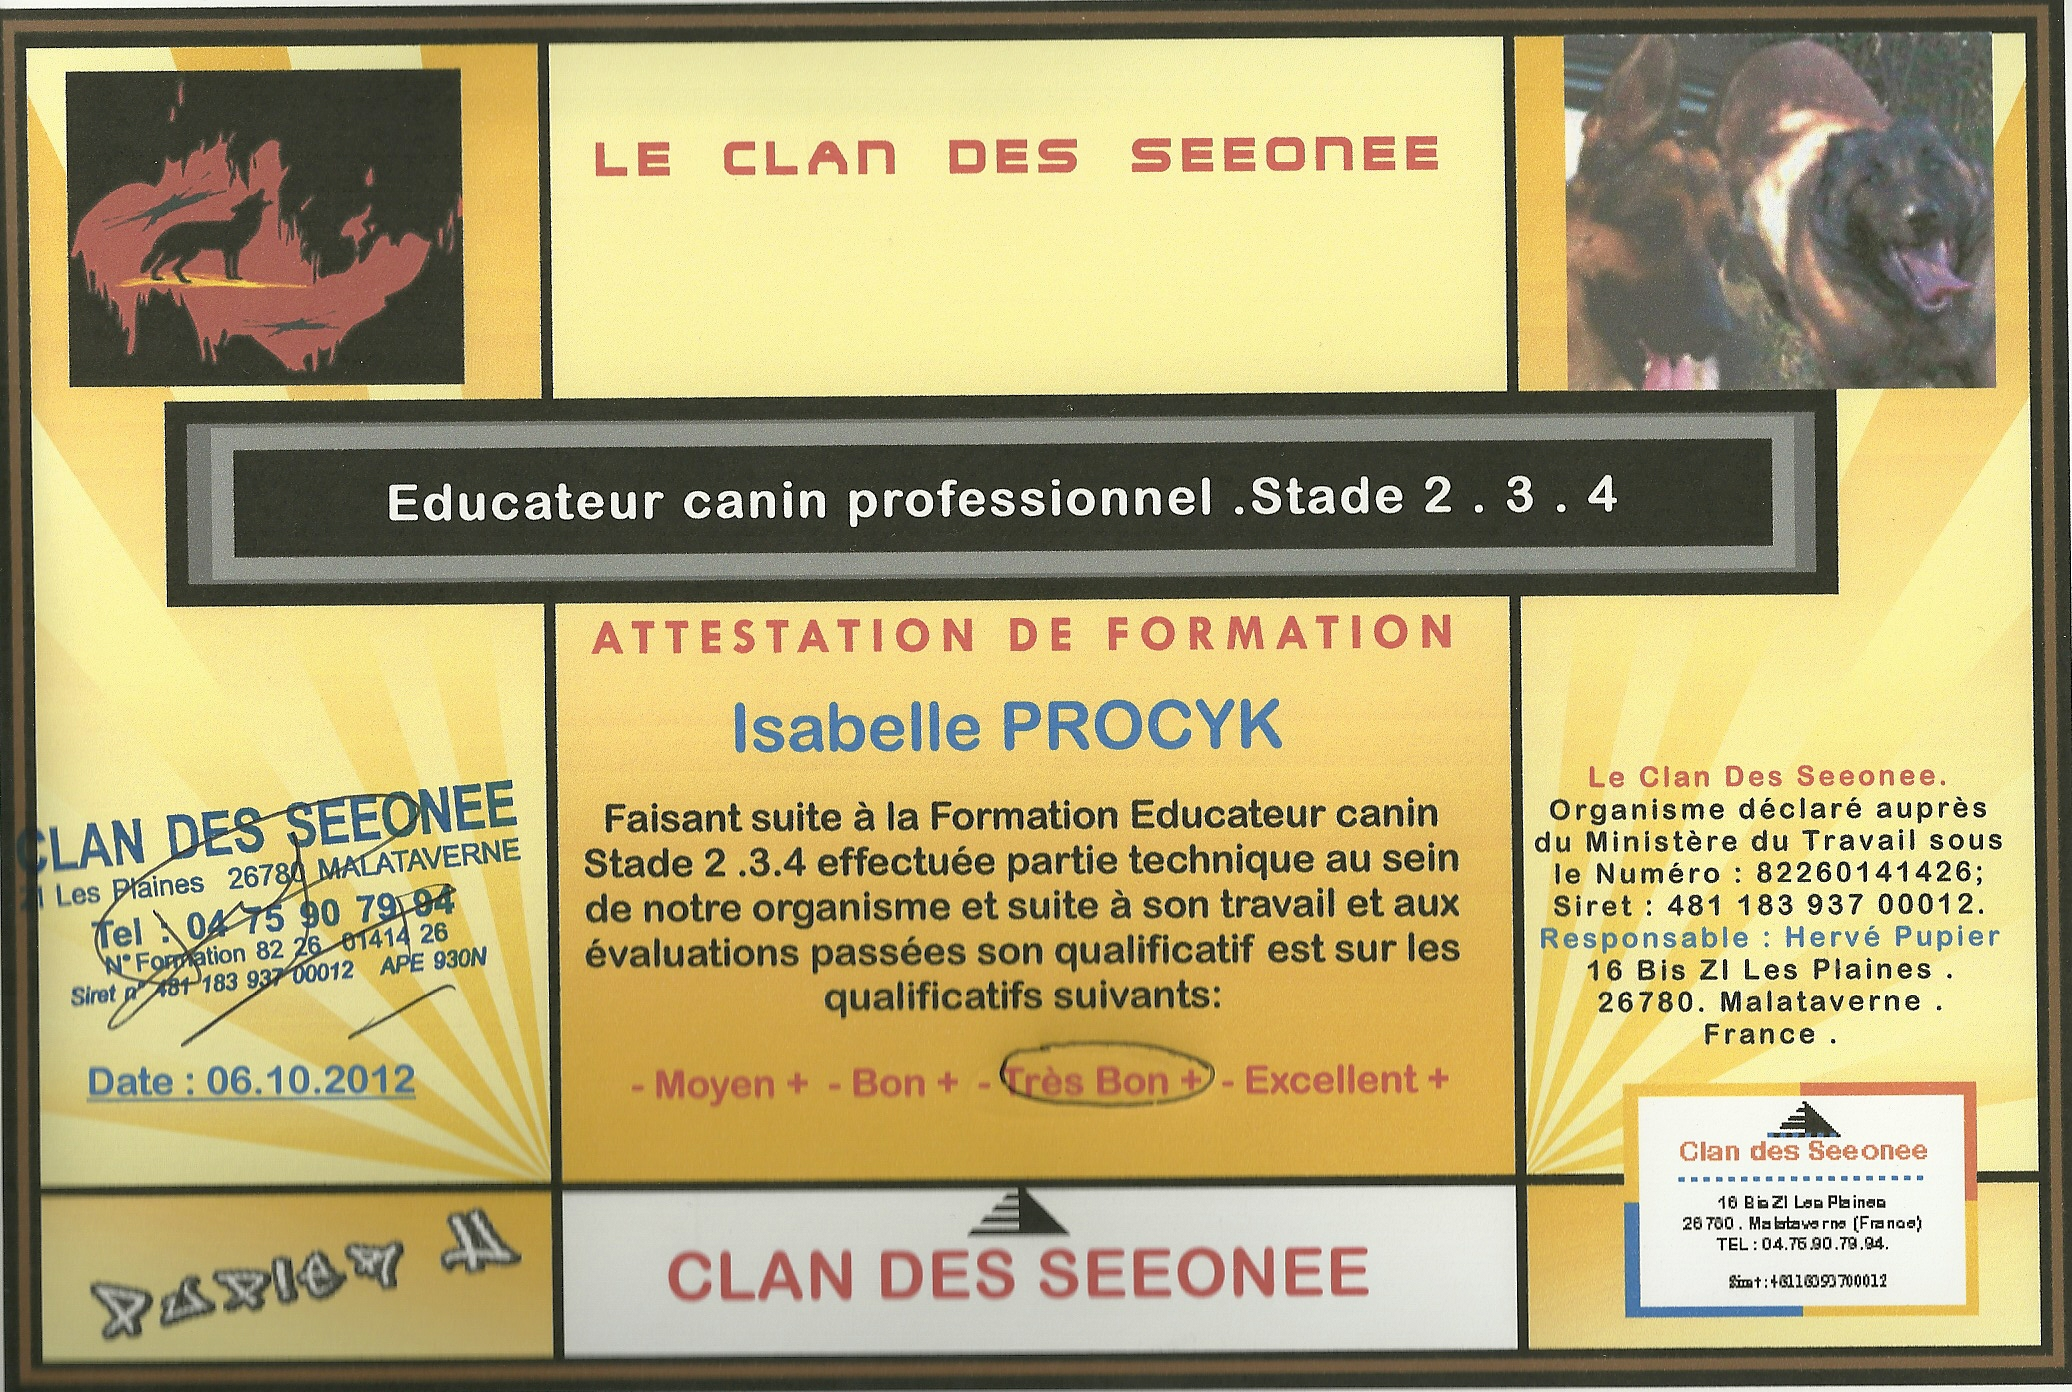 Educateur canin professionnel